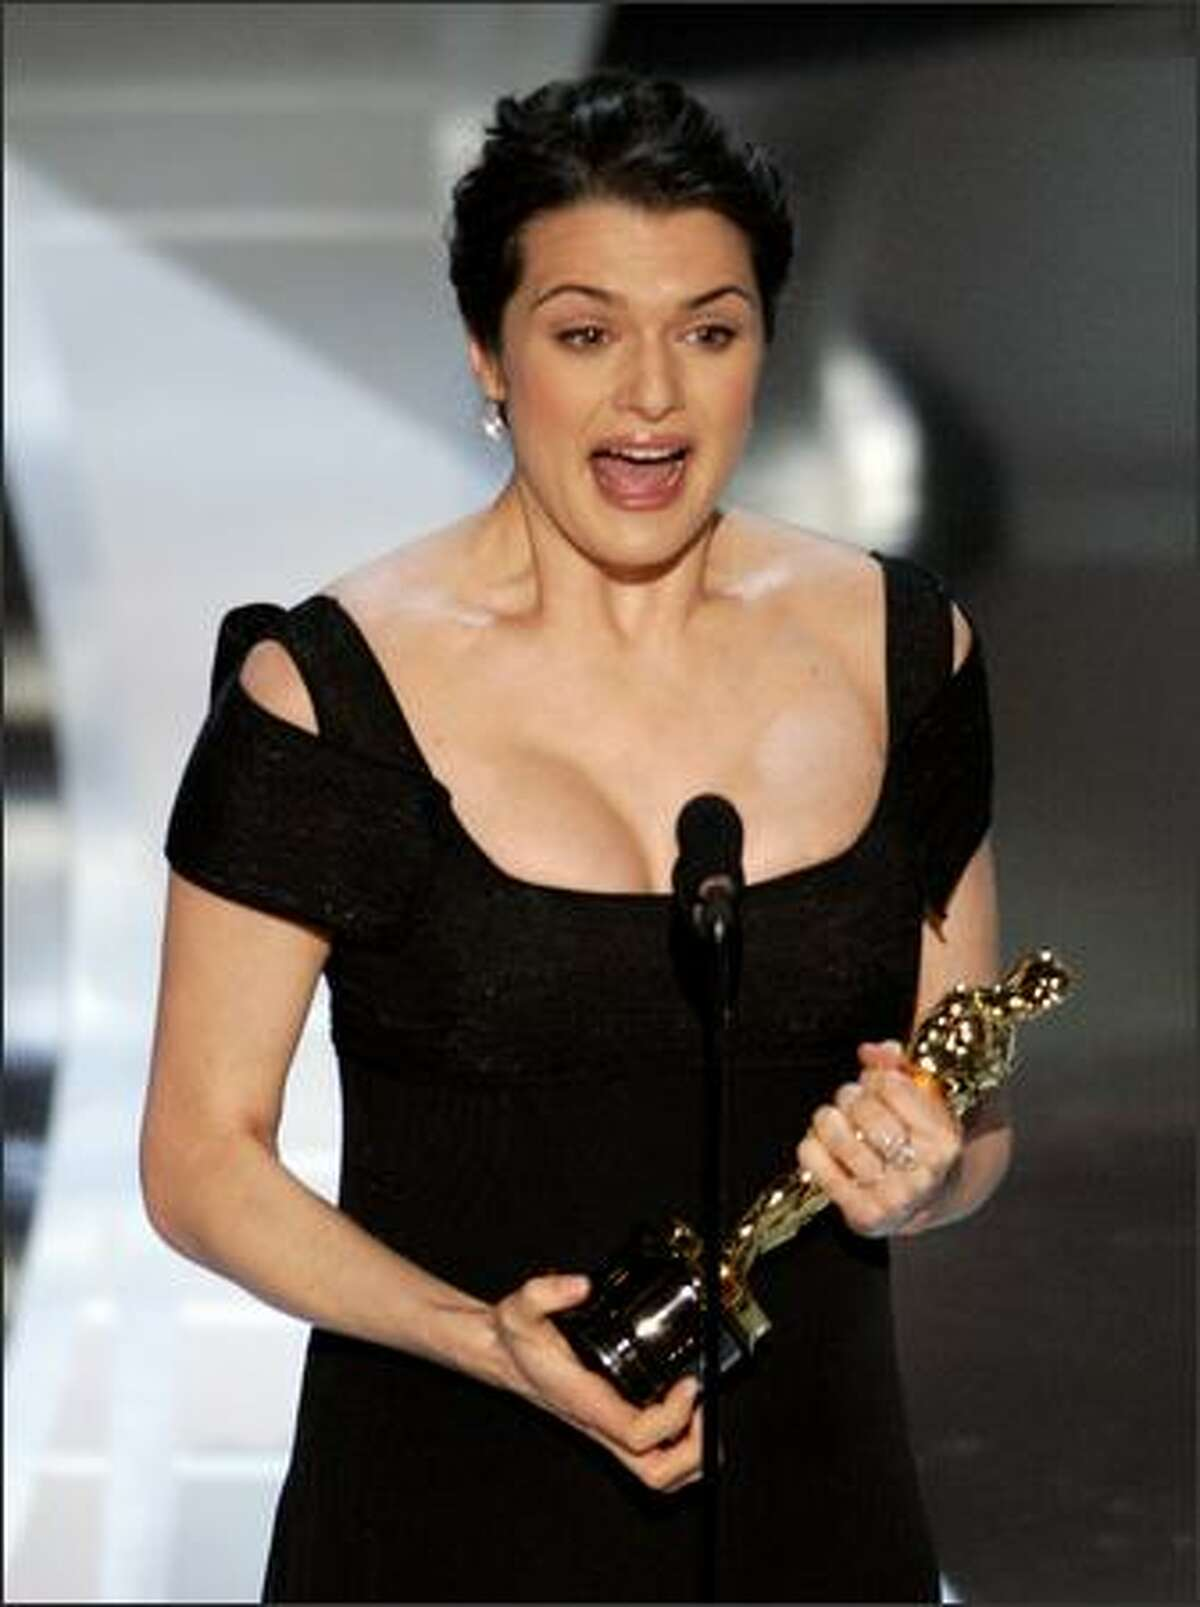 """British actress Rachel Weisz accepts the Oscar for best supporting actress for her work in """"The Constant Gardener"""" at the 78th Academy Awards Sunday, March 5, 2006, in Los Angeles. (AP Photo/Mark J. Terrill)"""